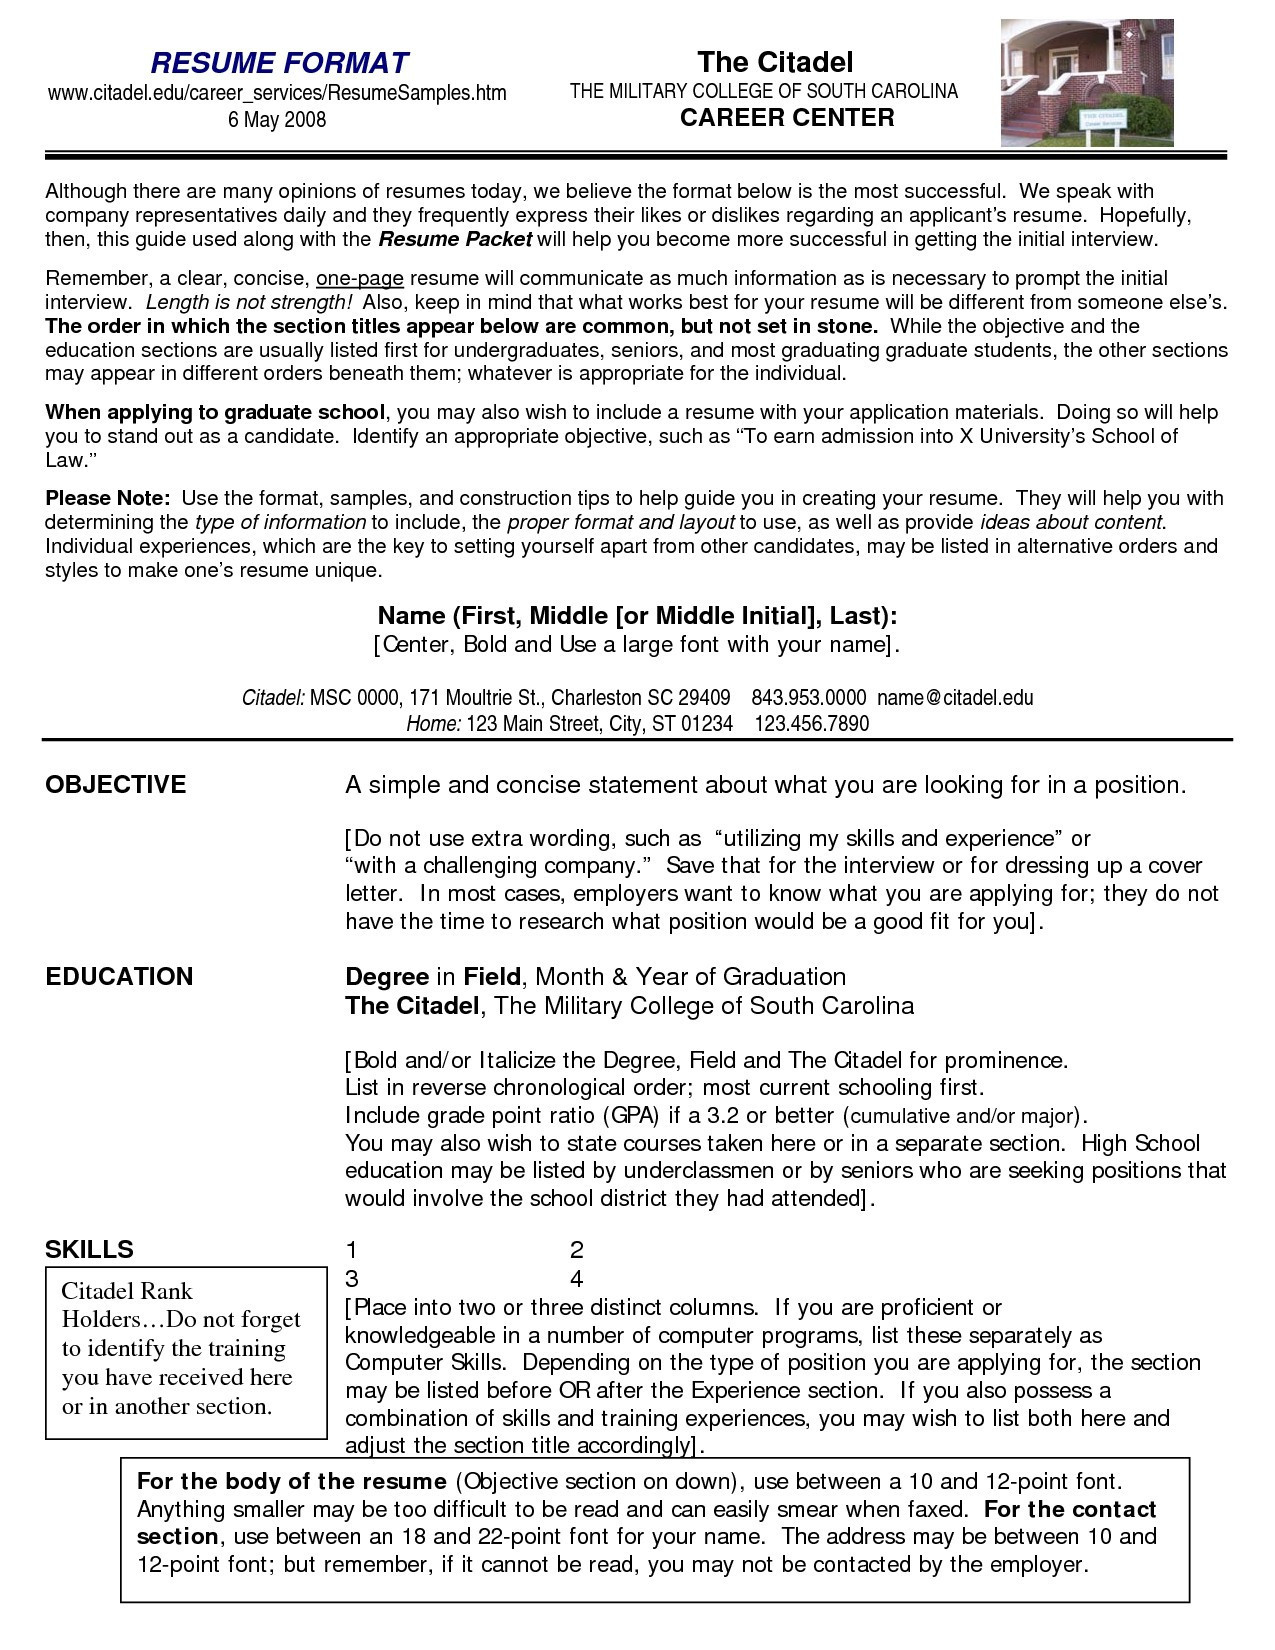 Knock Em Dead Resume Template - Knock Em Down Cheer Archives Vcuregistry